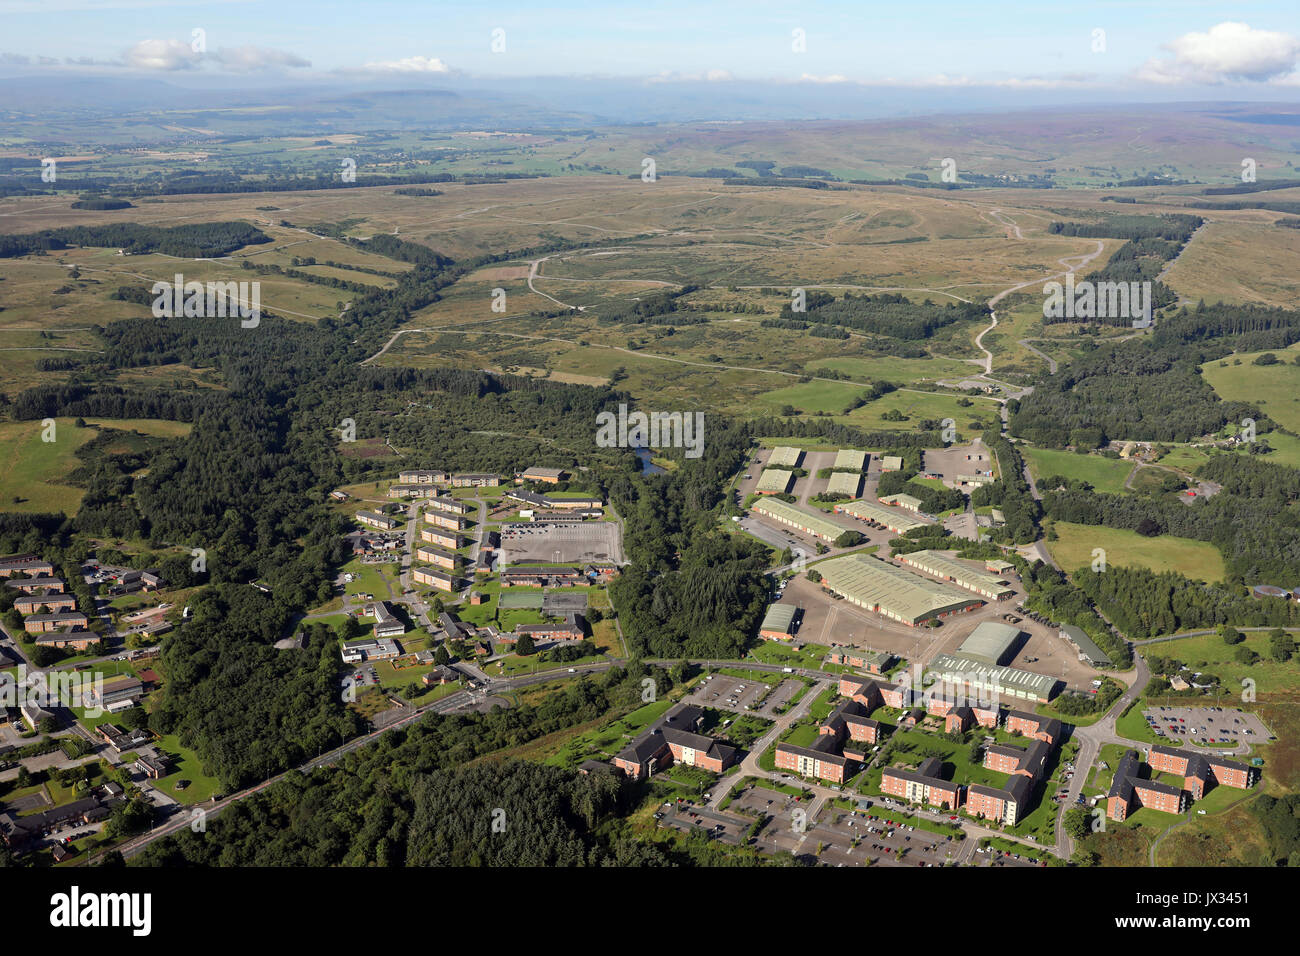 aerial view of Catterick Garrison and army training land to the west, UK - Stock Image